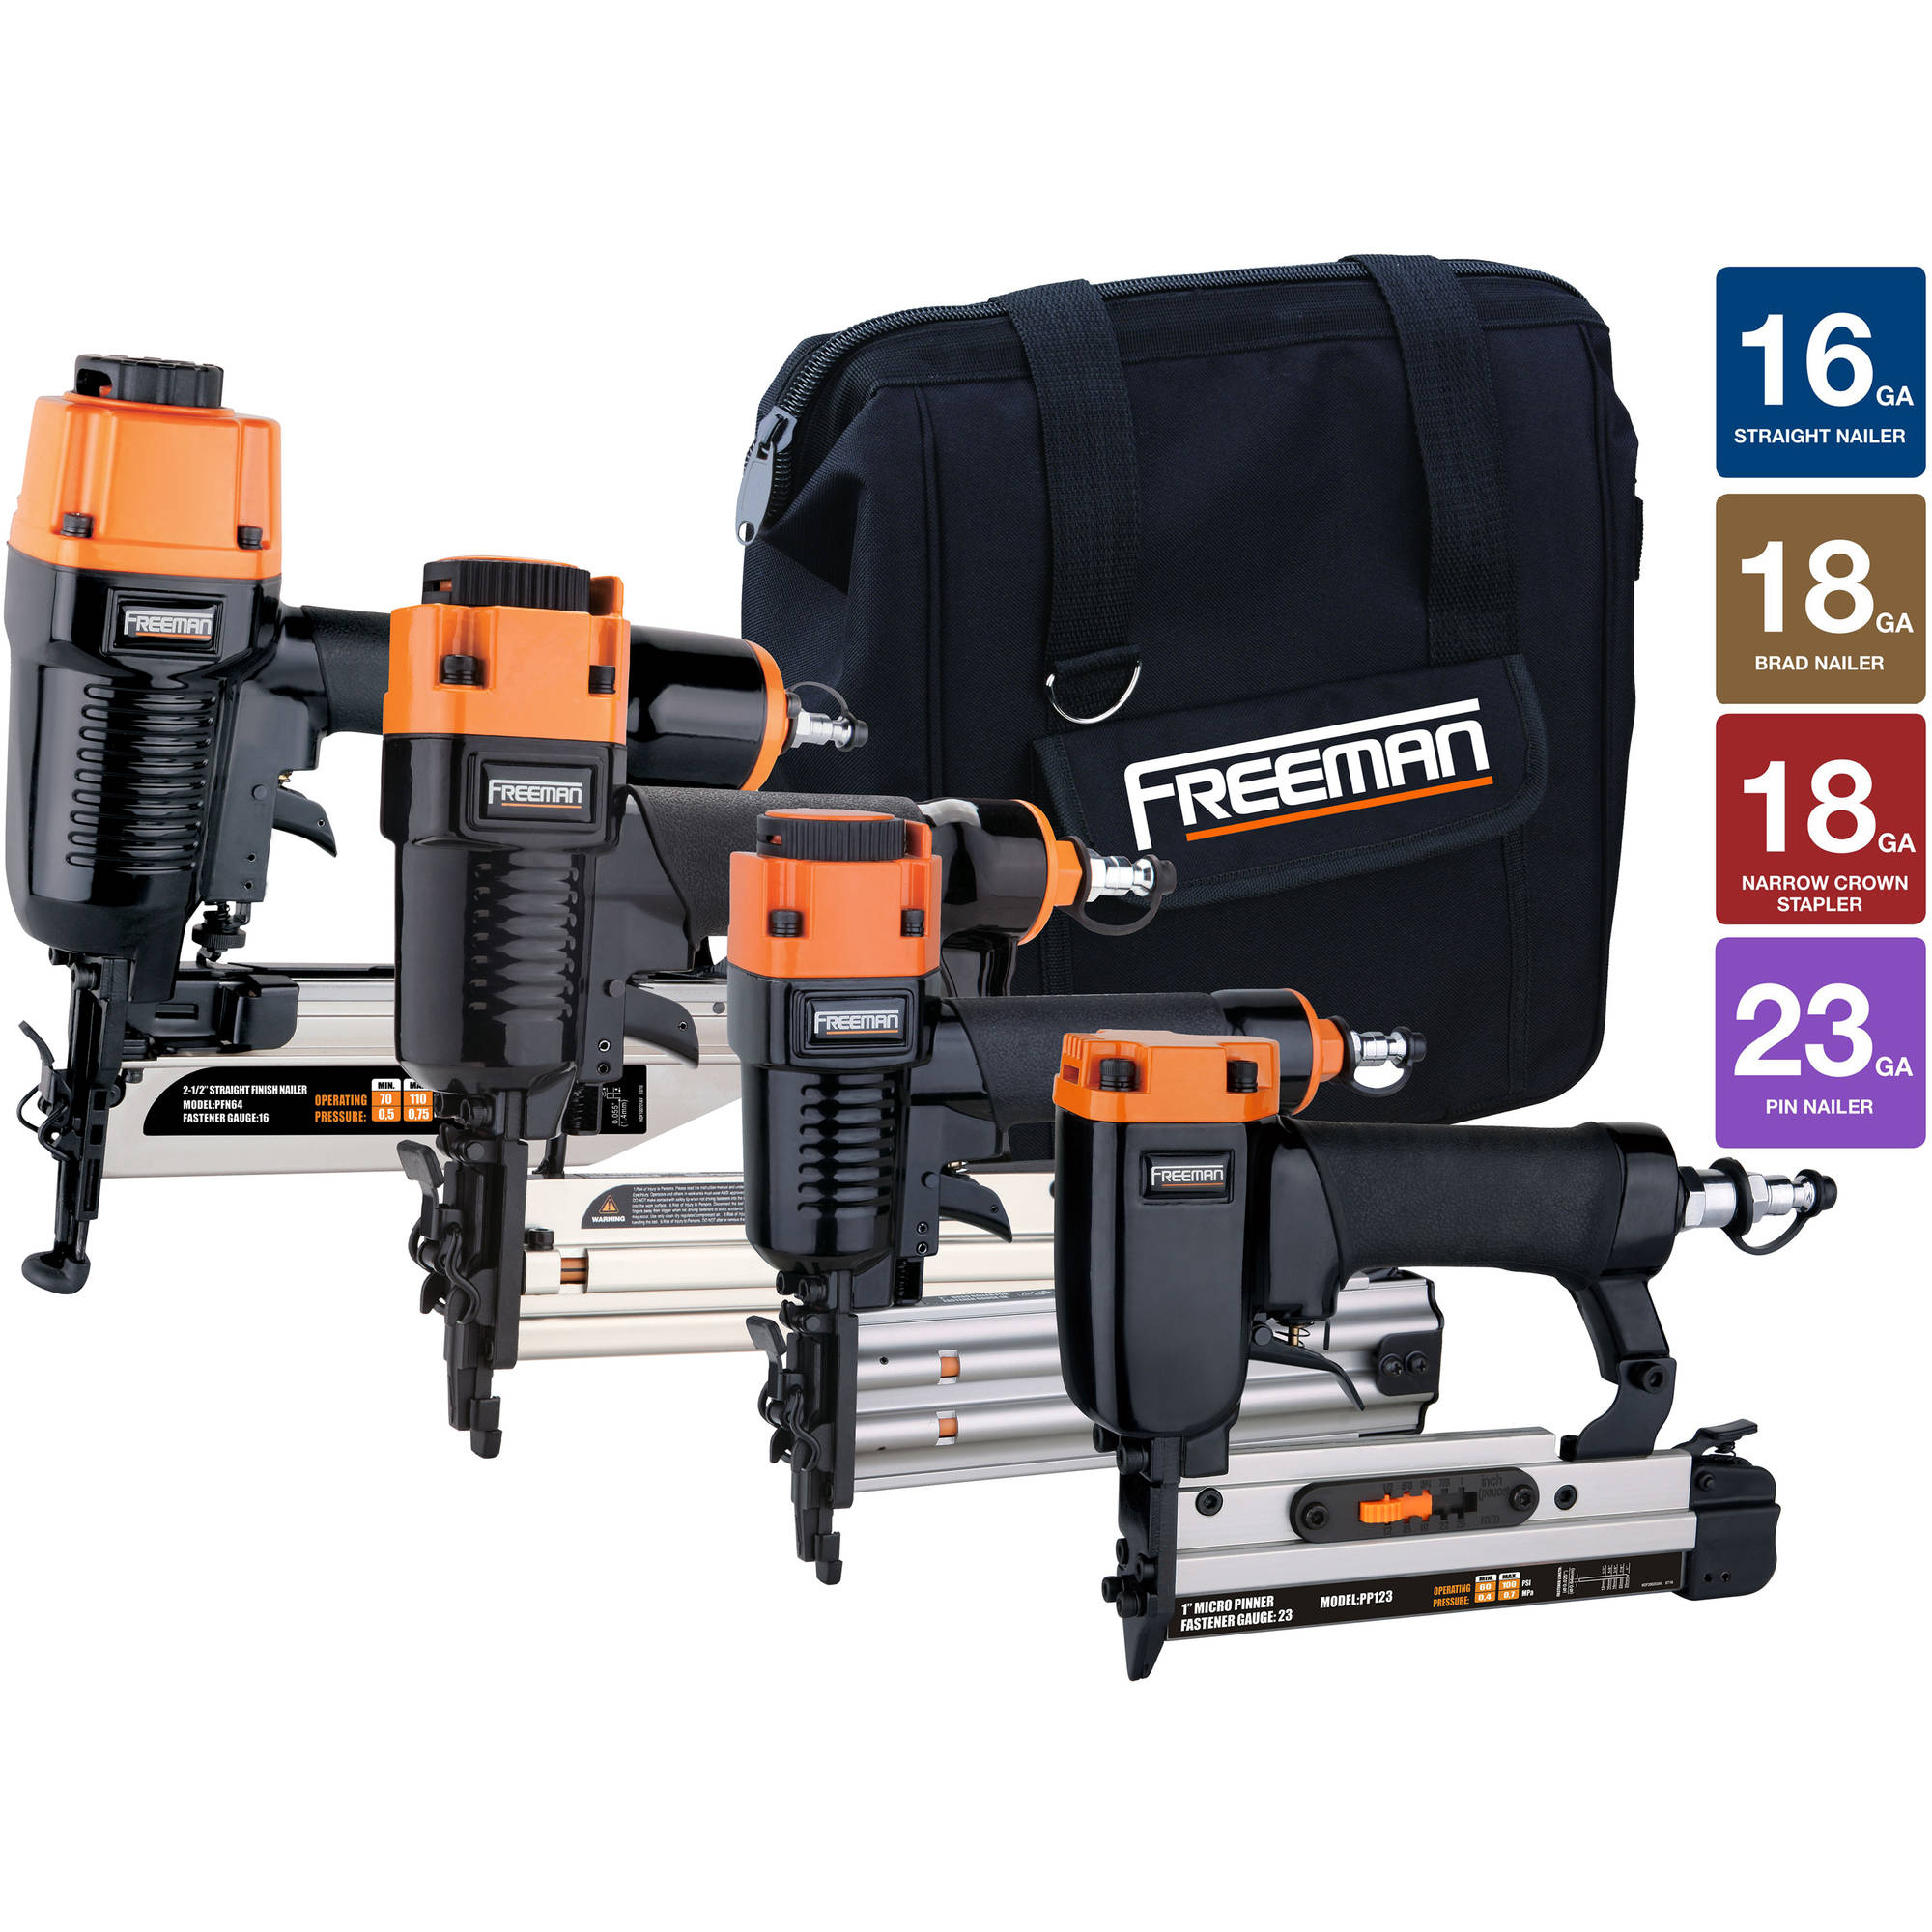 Freeman 4-Piece Finish Nailer Combo Kit with Canvas Storage Bag